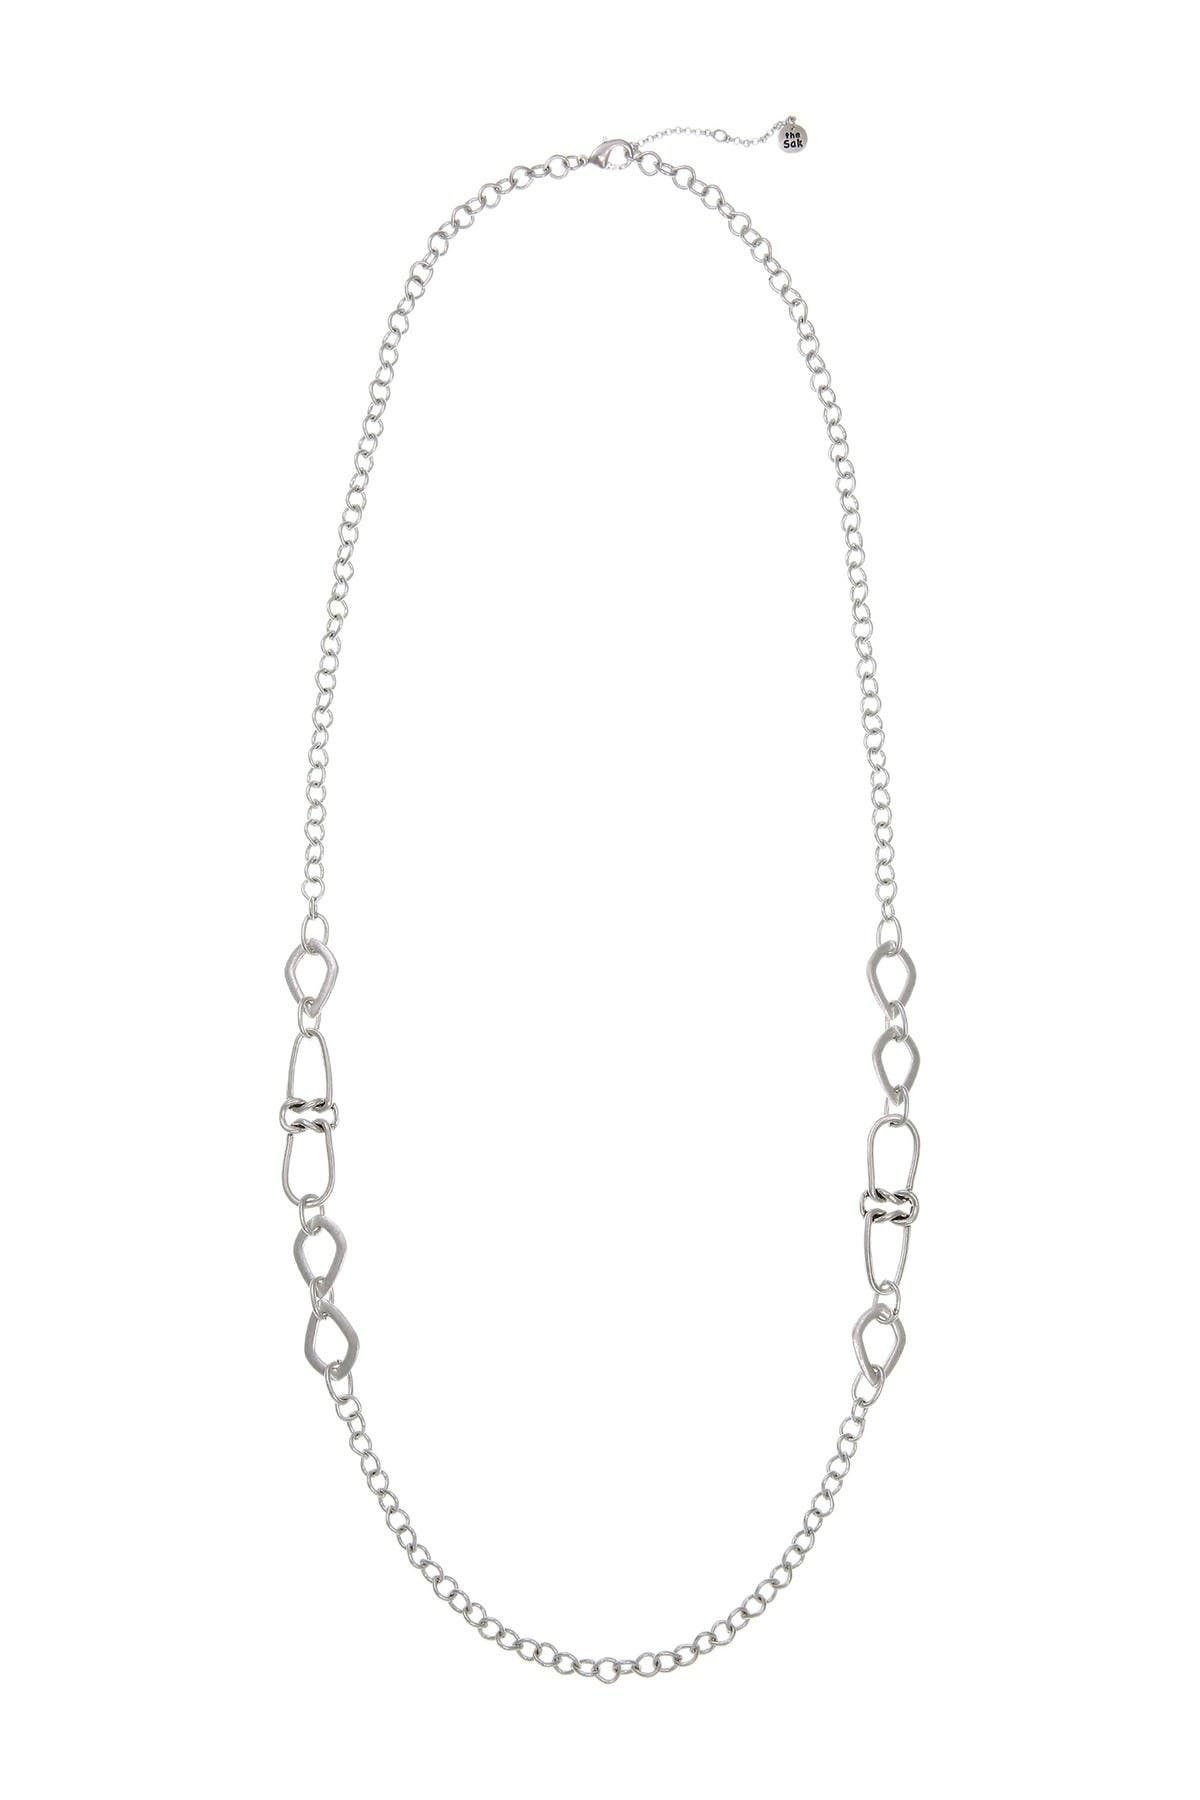 Image of The Sak Double Knot Casting Long Necklace